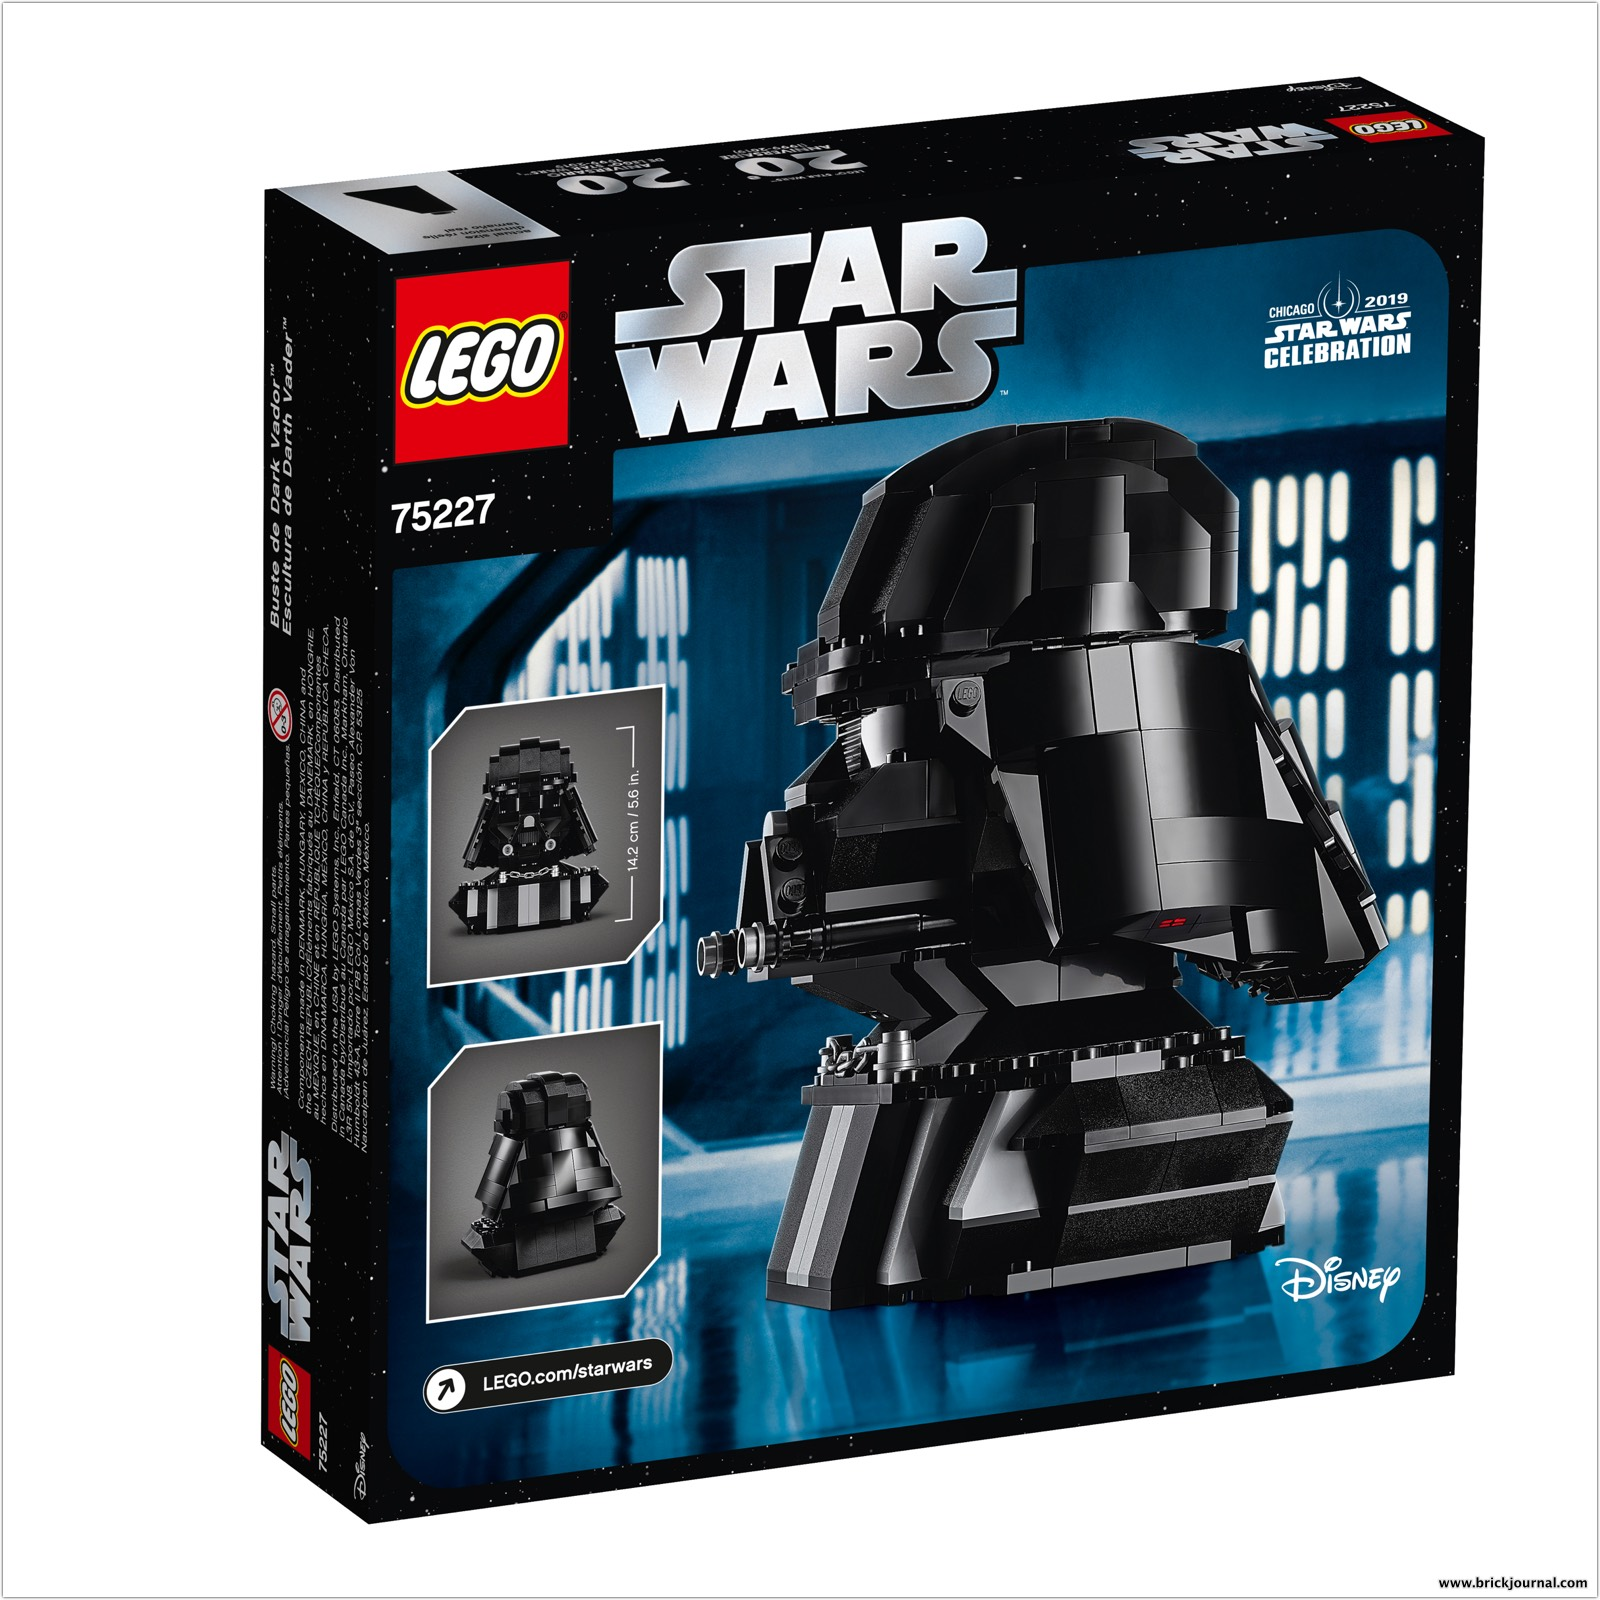 Turn To The Dark Side With The Lego Star Wars 75227 Darth Vader Bust